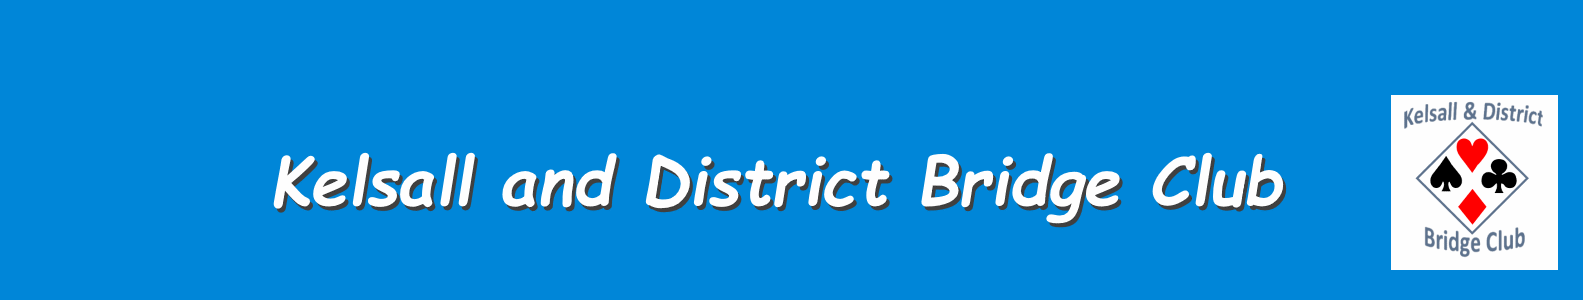 Results of Kelsall and District Bridge Club games